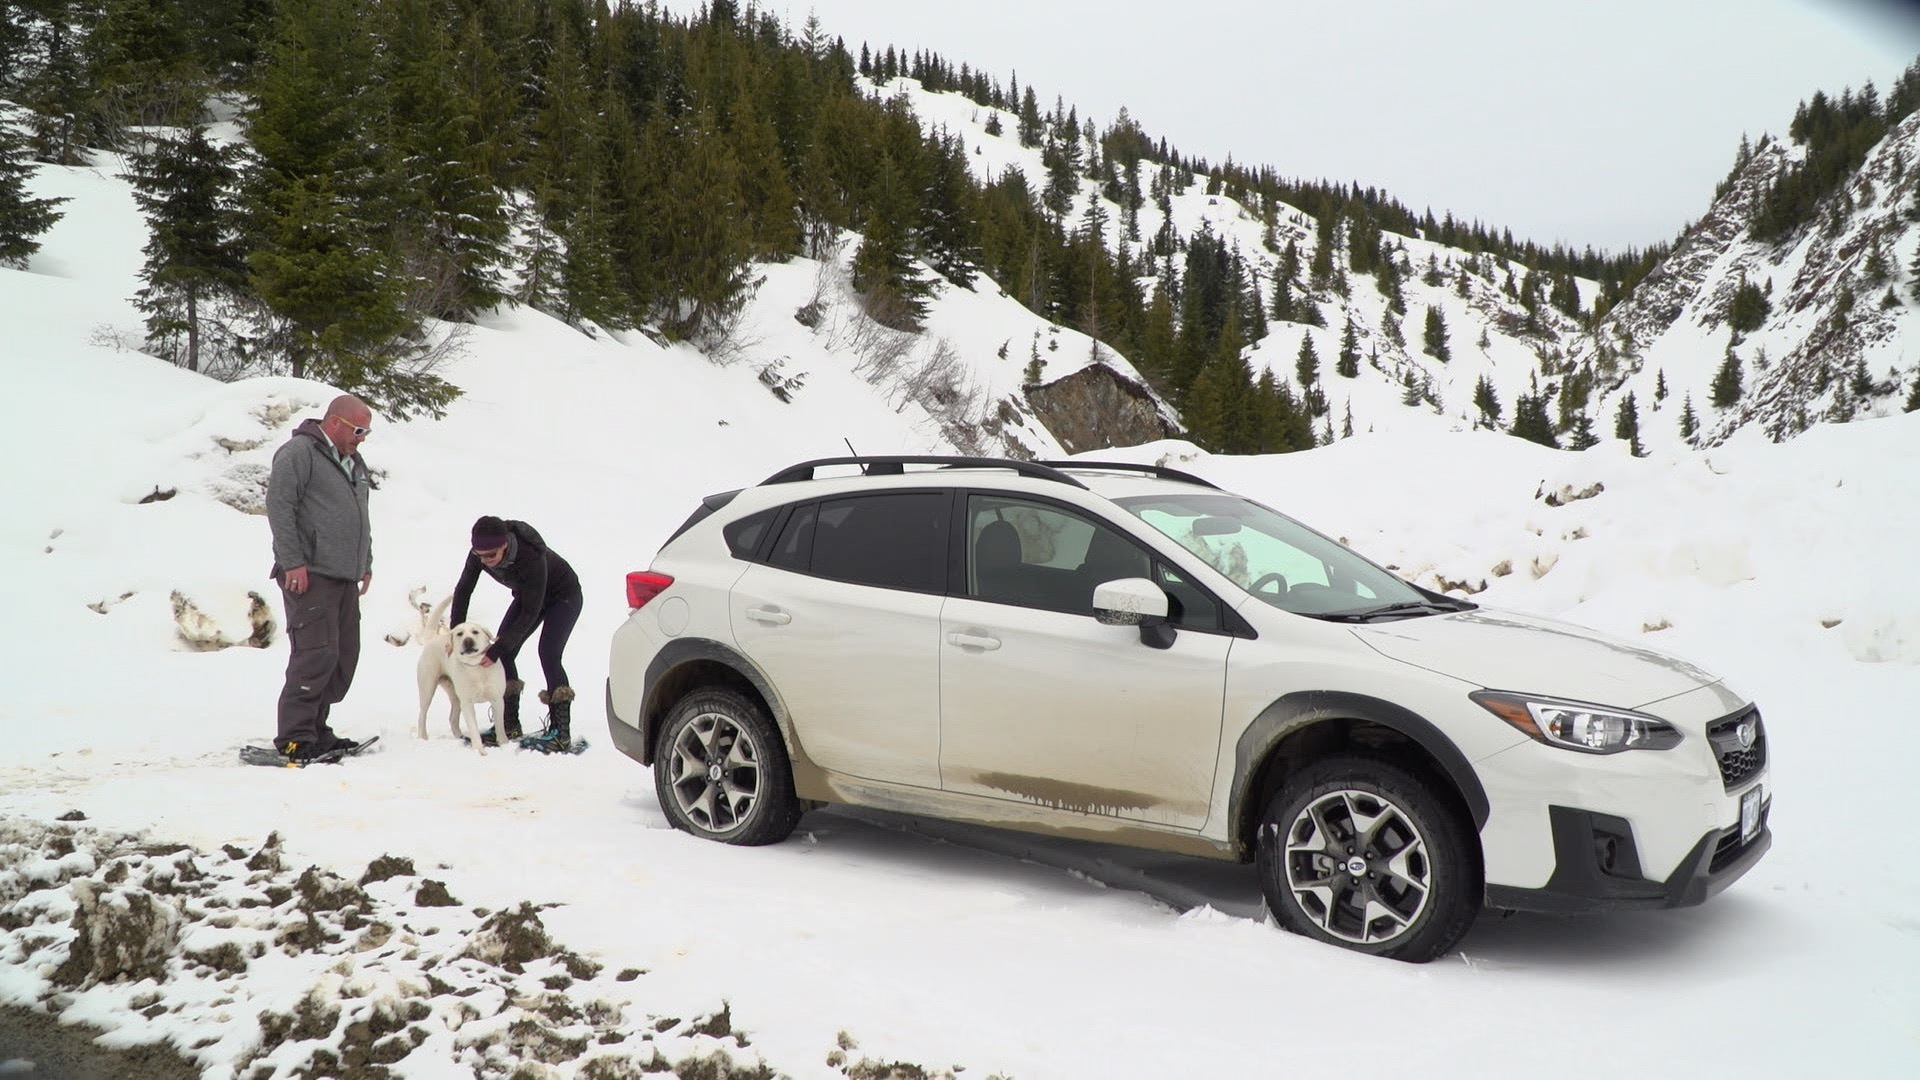 2018 Subaru Crosstrek takes you snowshoeing